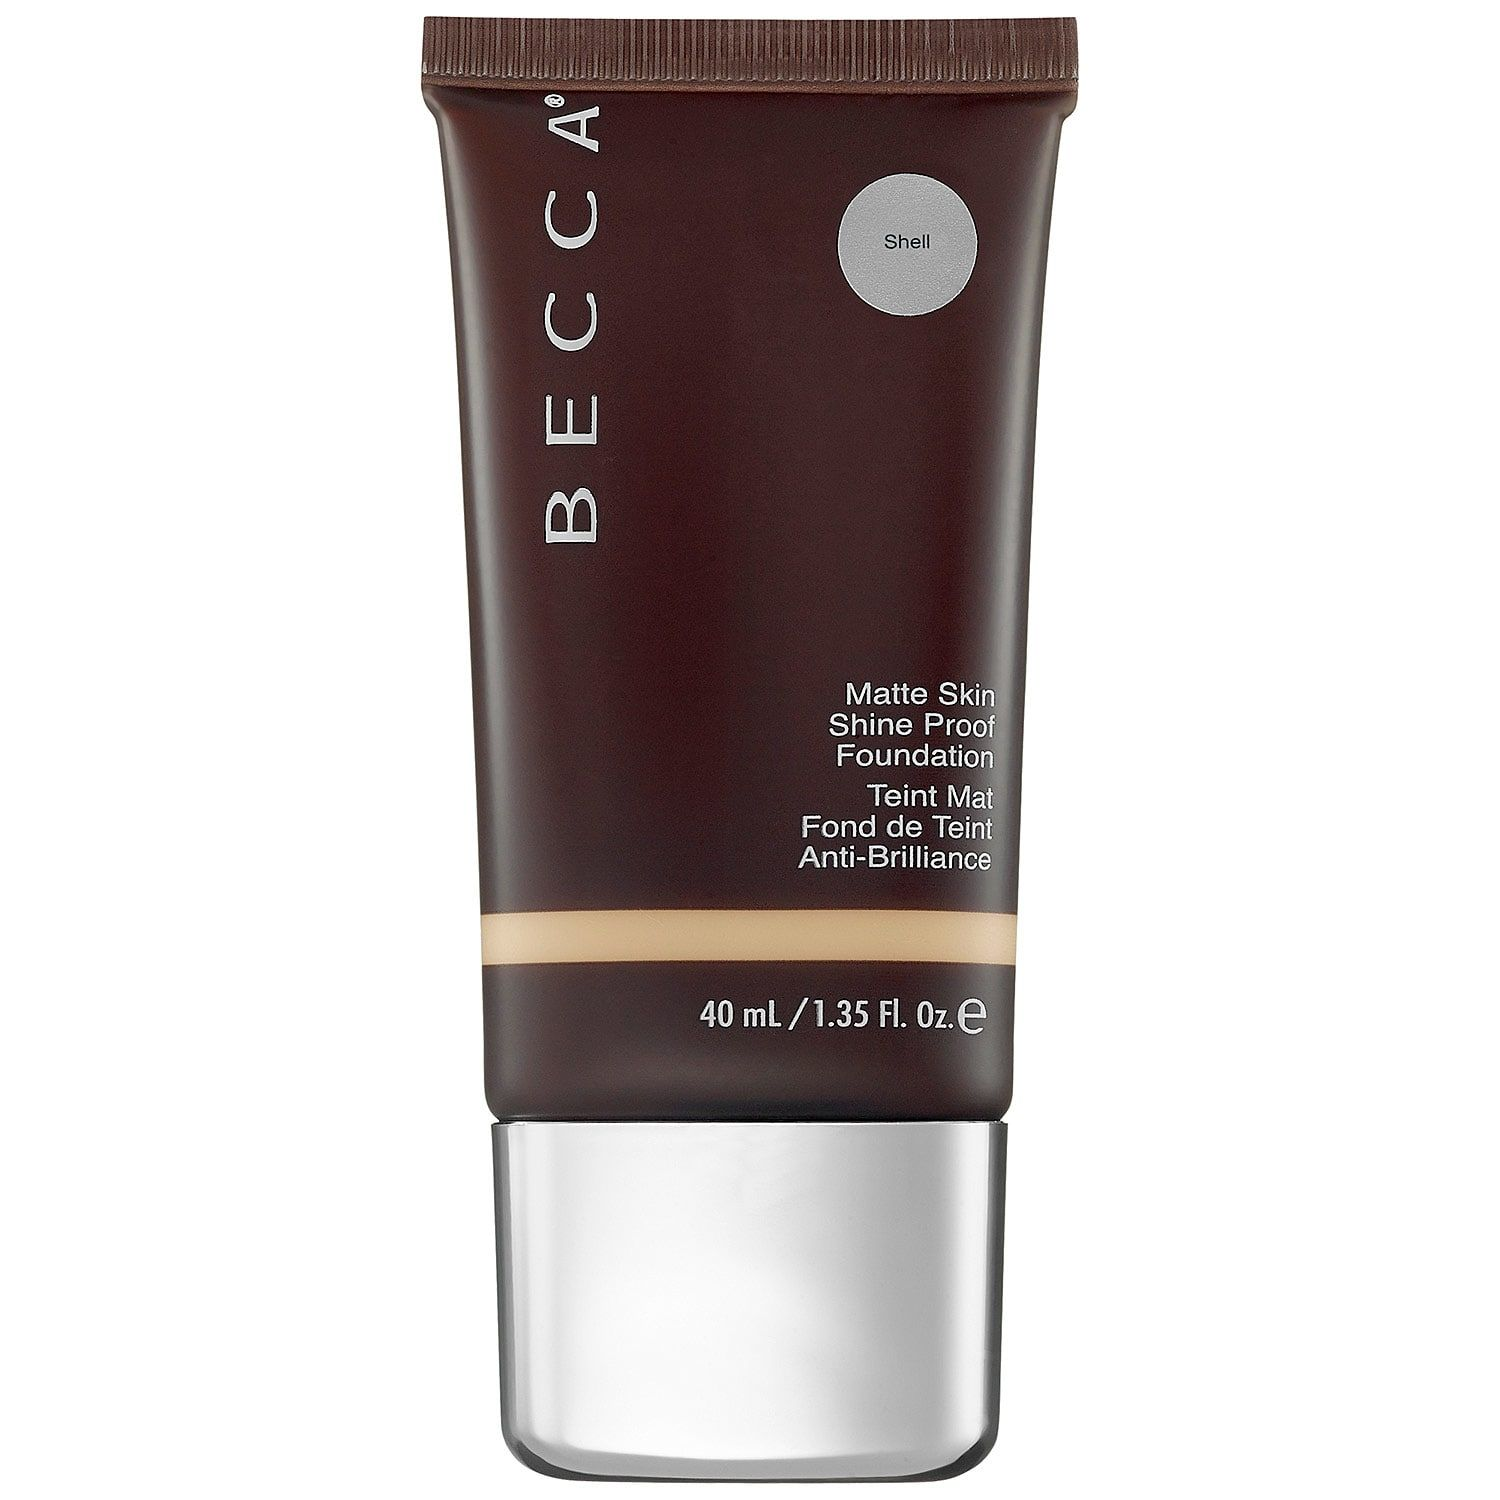 For Zero Shine Ever-Matte Shine Proof Foundation Becca sephora.com $42.00 SHOP NOW Becca Shine is packed with a microfine powder that works to absorb oil on your face all day so you stay shine free. The bonus vitamins E and A provide antioxidants.